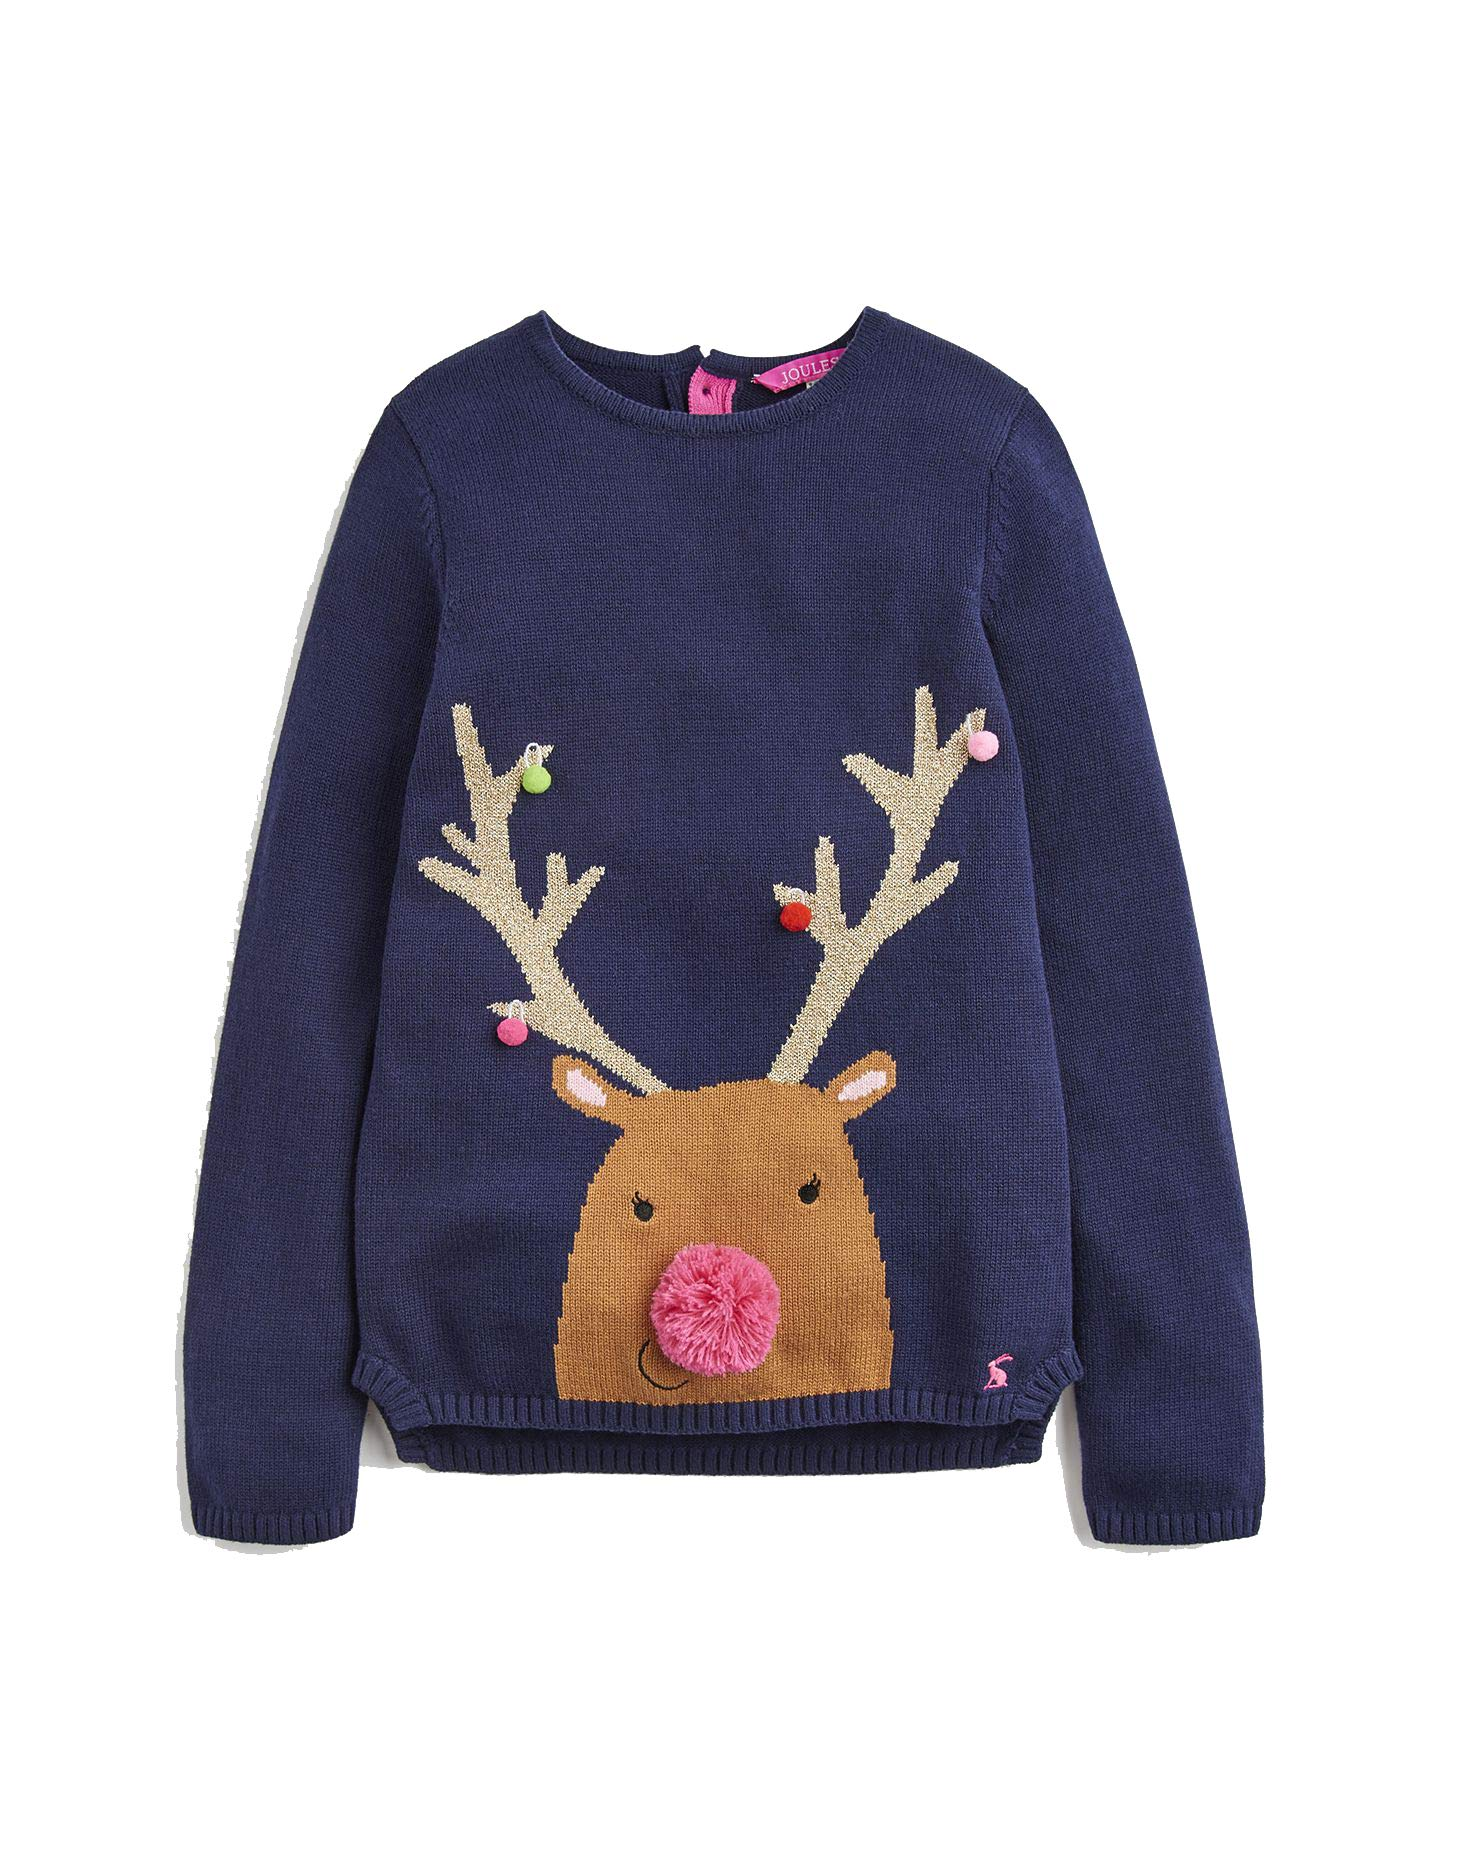 Joules Festive Artwork Sweater - French Navy - 3 Years - 98 cm by Joules